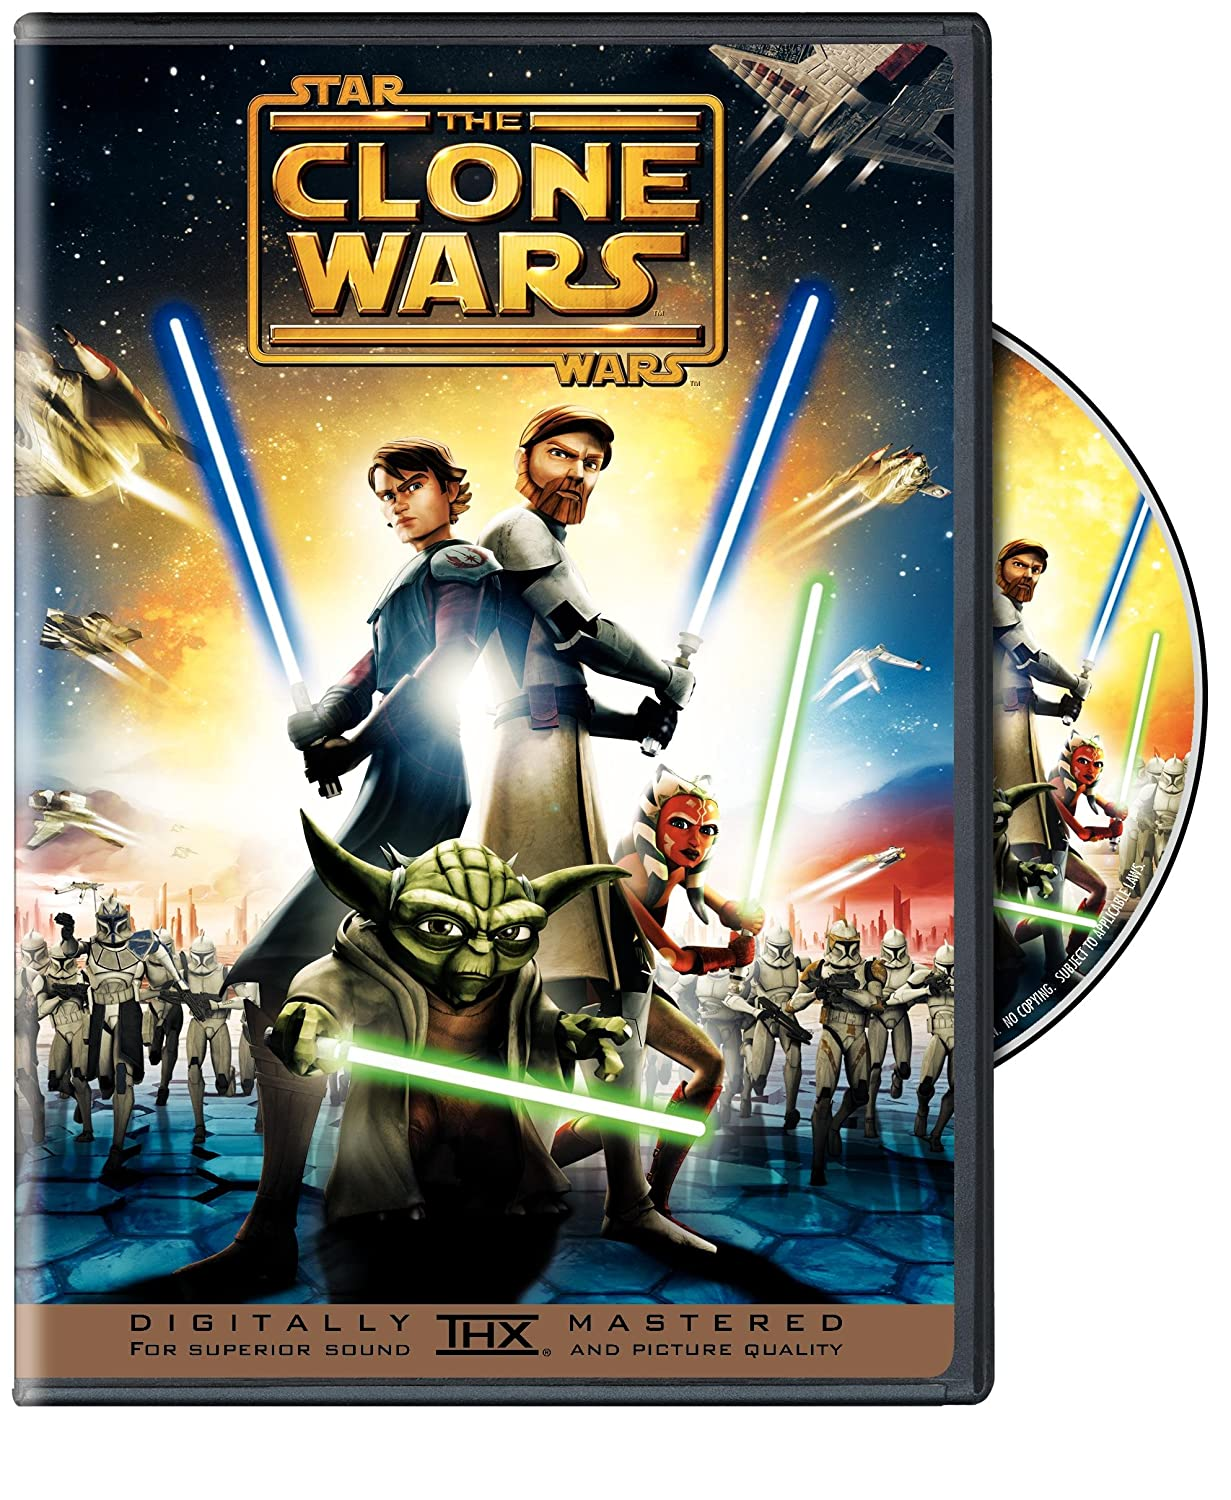 Star Wars The Clone Wars Widescreen Edition Matt Lanter Ashley Eckstein James Arnold Taylor Dee Bradley Baker Christopher Lee Samuel L Jackson Anthony Daniels Dave Filoni Movies Tv